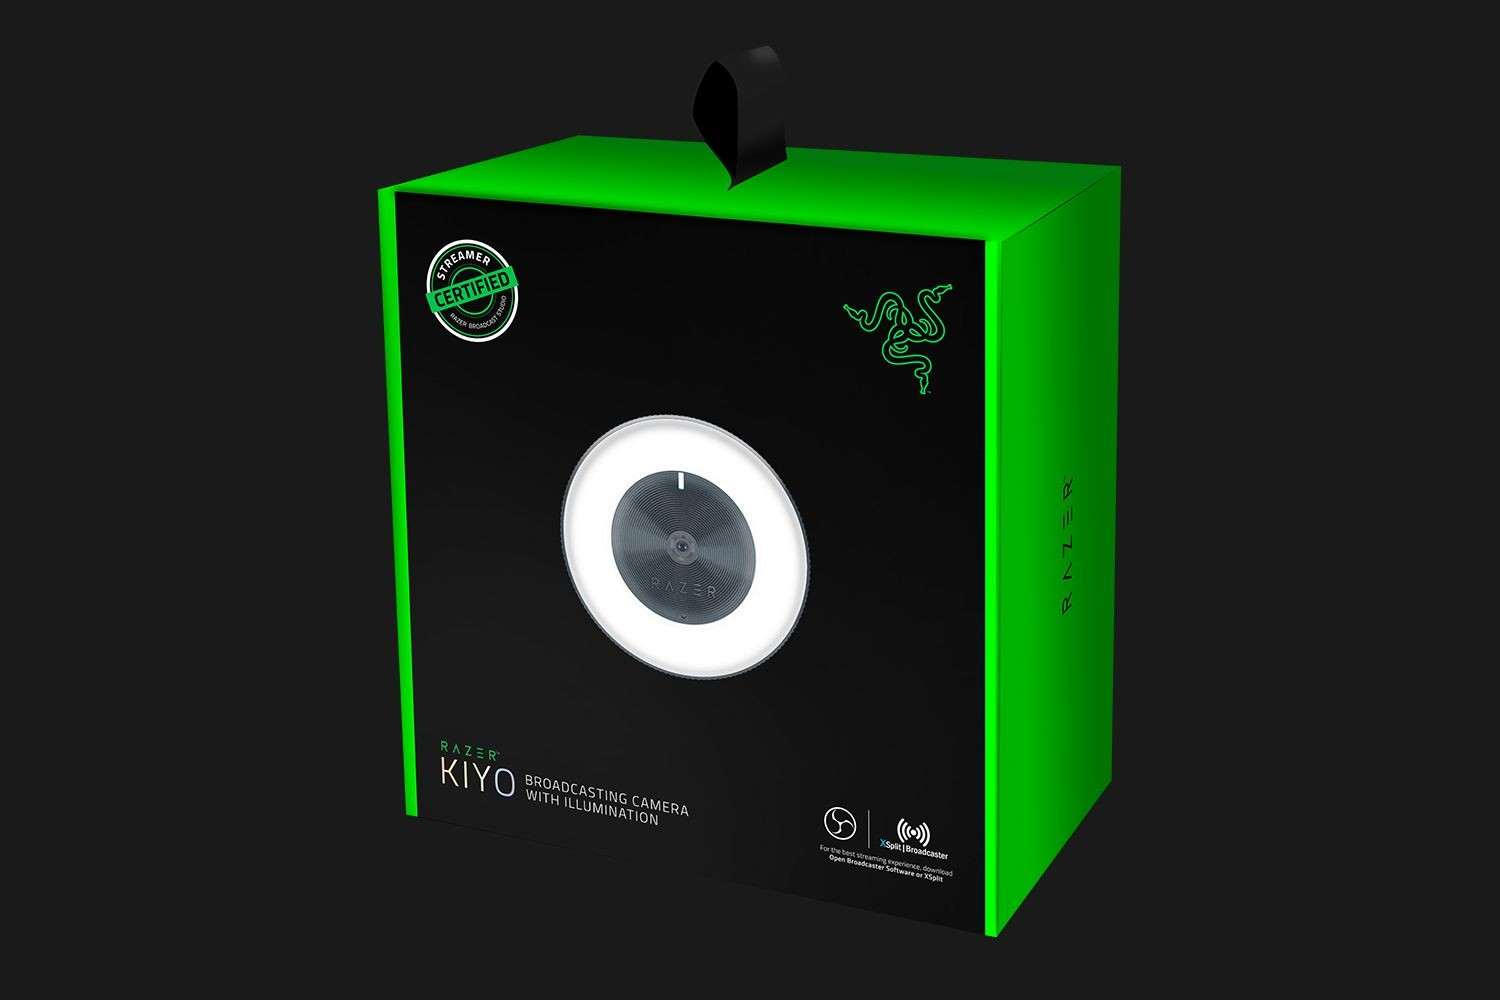 Razer Kiyo Broadcasting Camera 1080p @ 30FPS